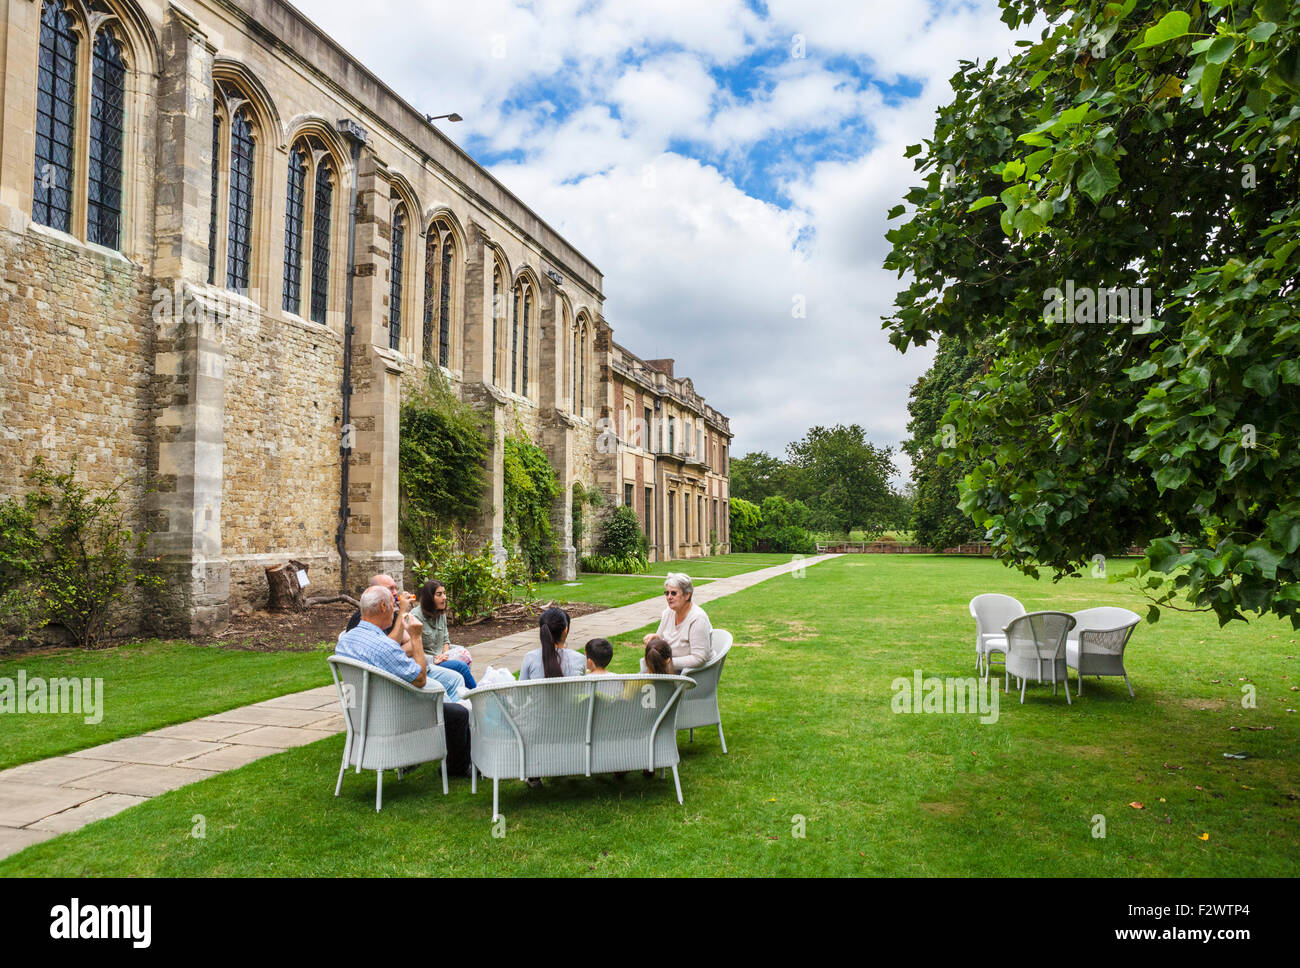 The rear of Eltham Palace with the Great Hall to the left, Eltham, London, England, UK - Stock Image